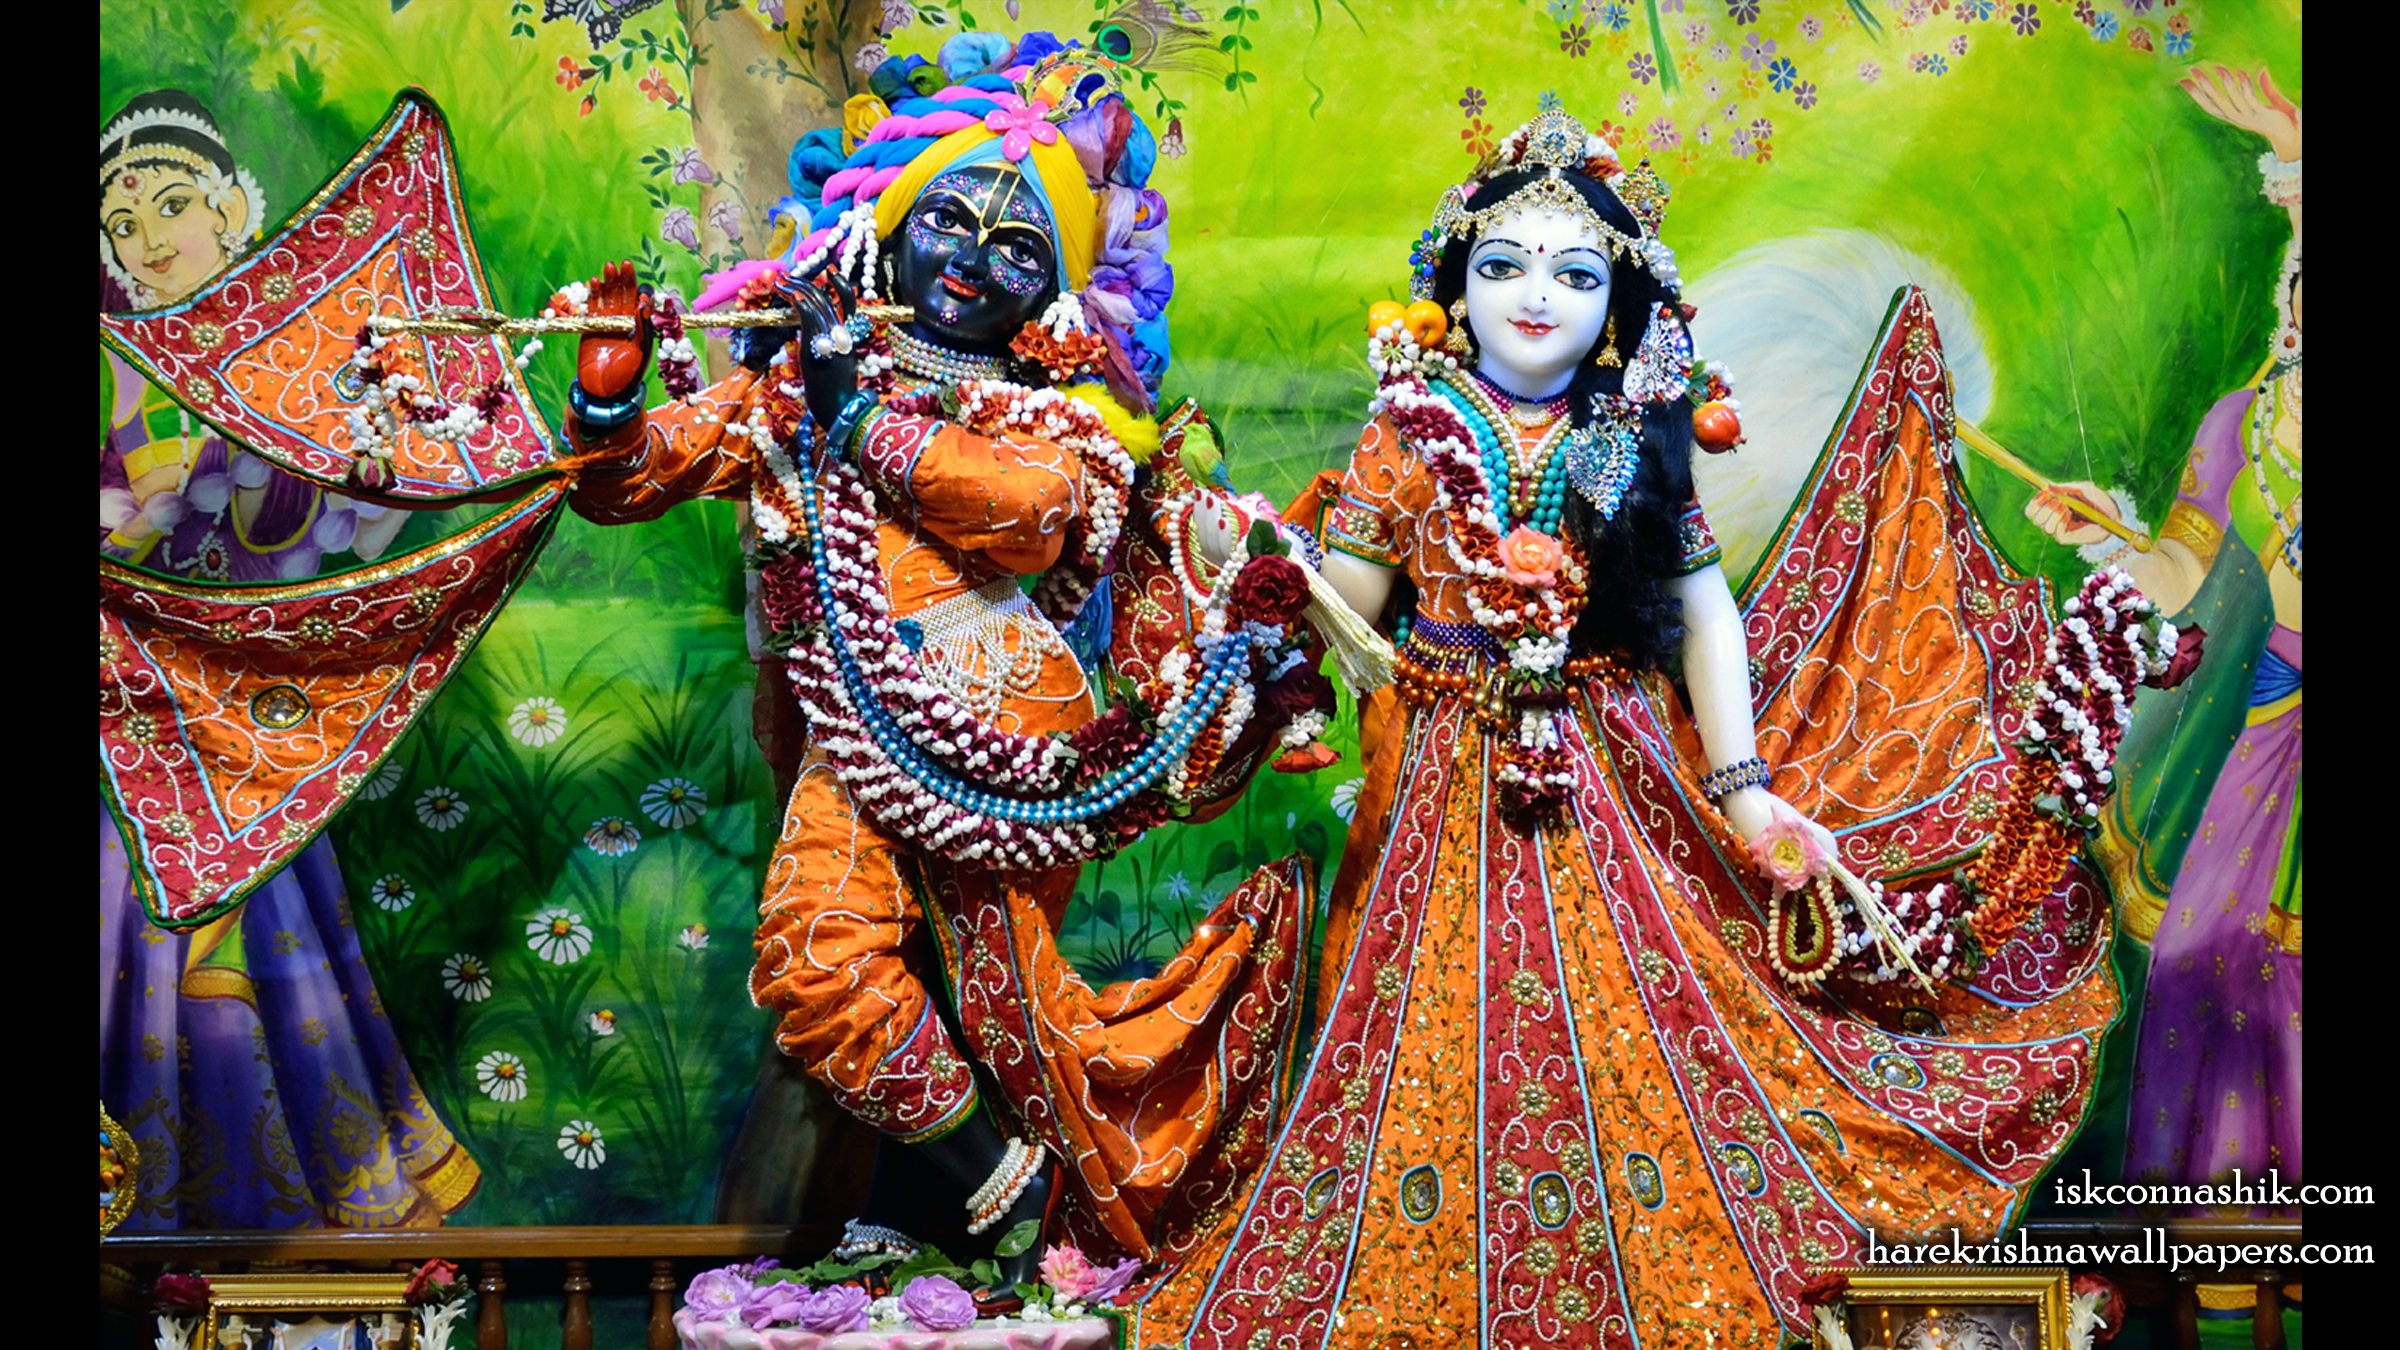 Sri Sri Radha Madan Gopal Wallpaper (024) Size 2400x1350 Download